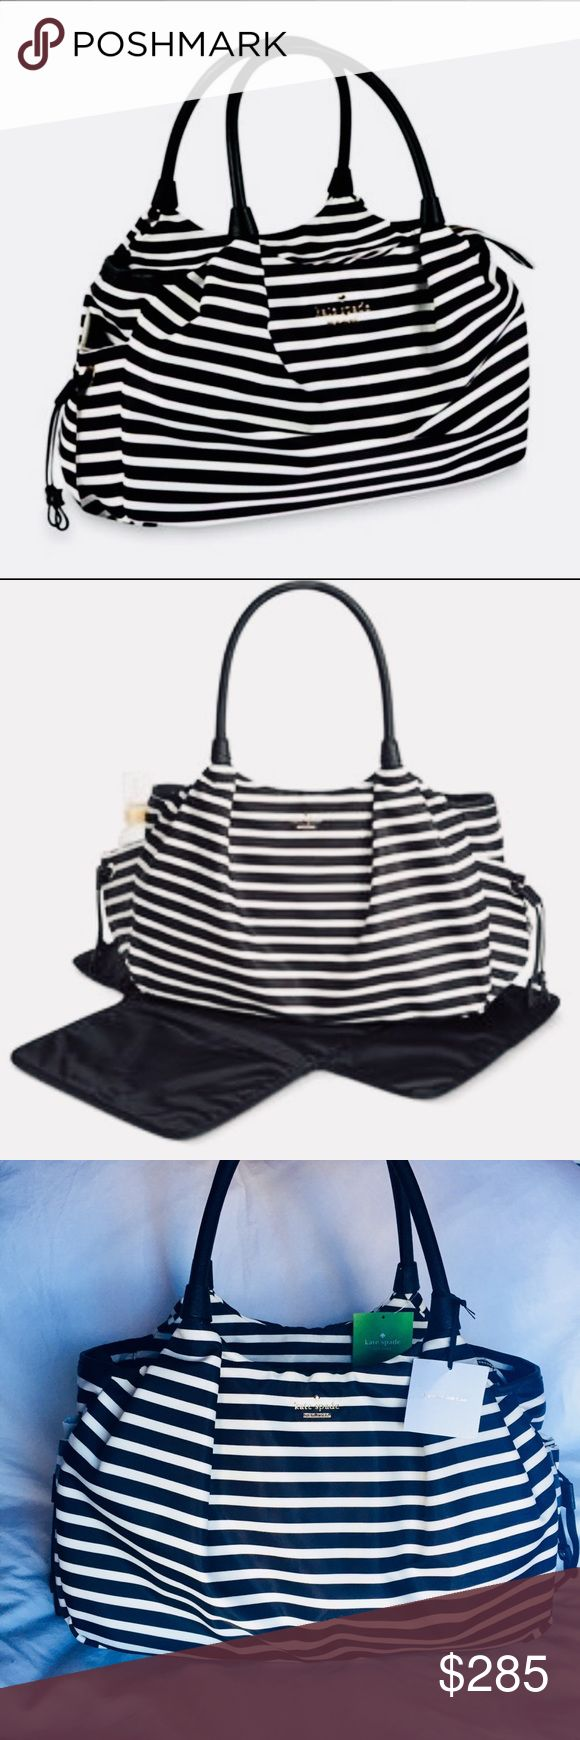 """♠️ Kate Spade ♠️ NWT diaper bag SIZE 10.9""""h x 17.2""""w x 7""""d drop length: 8""""  MATERIAL durable woven nylon with crosshatched leather trim custom woven bookstripe print on poly twill lining 14 karat gold plated hardware  DETAILS baby bag with zipper closure double slide pockets, zipper pocket, changing pad slide pocket and exterior bottle pockets  Offers Welcome 💕 kate spade Bags"""